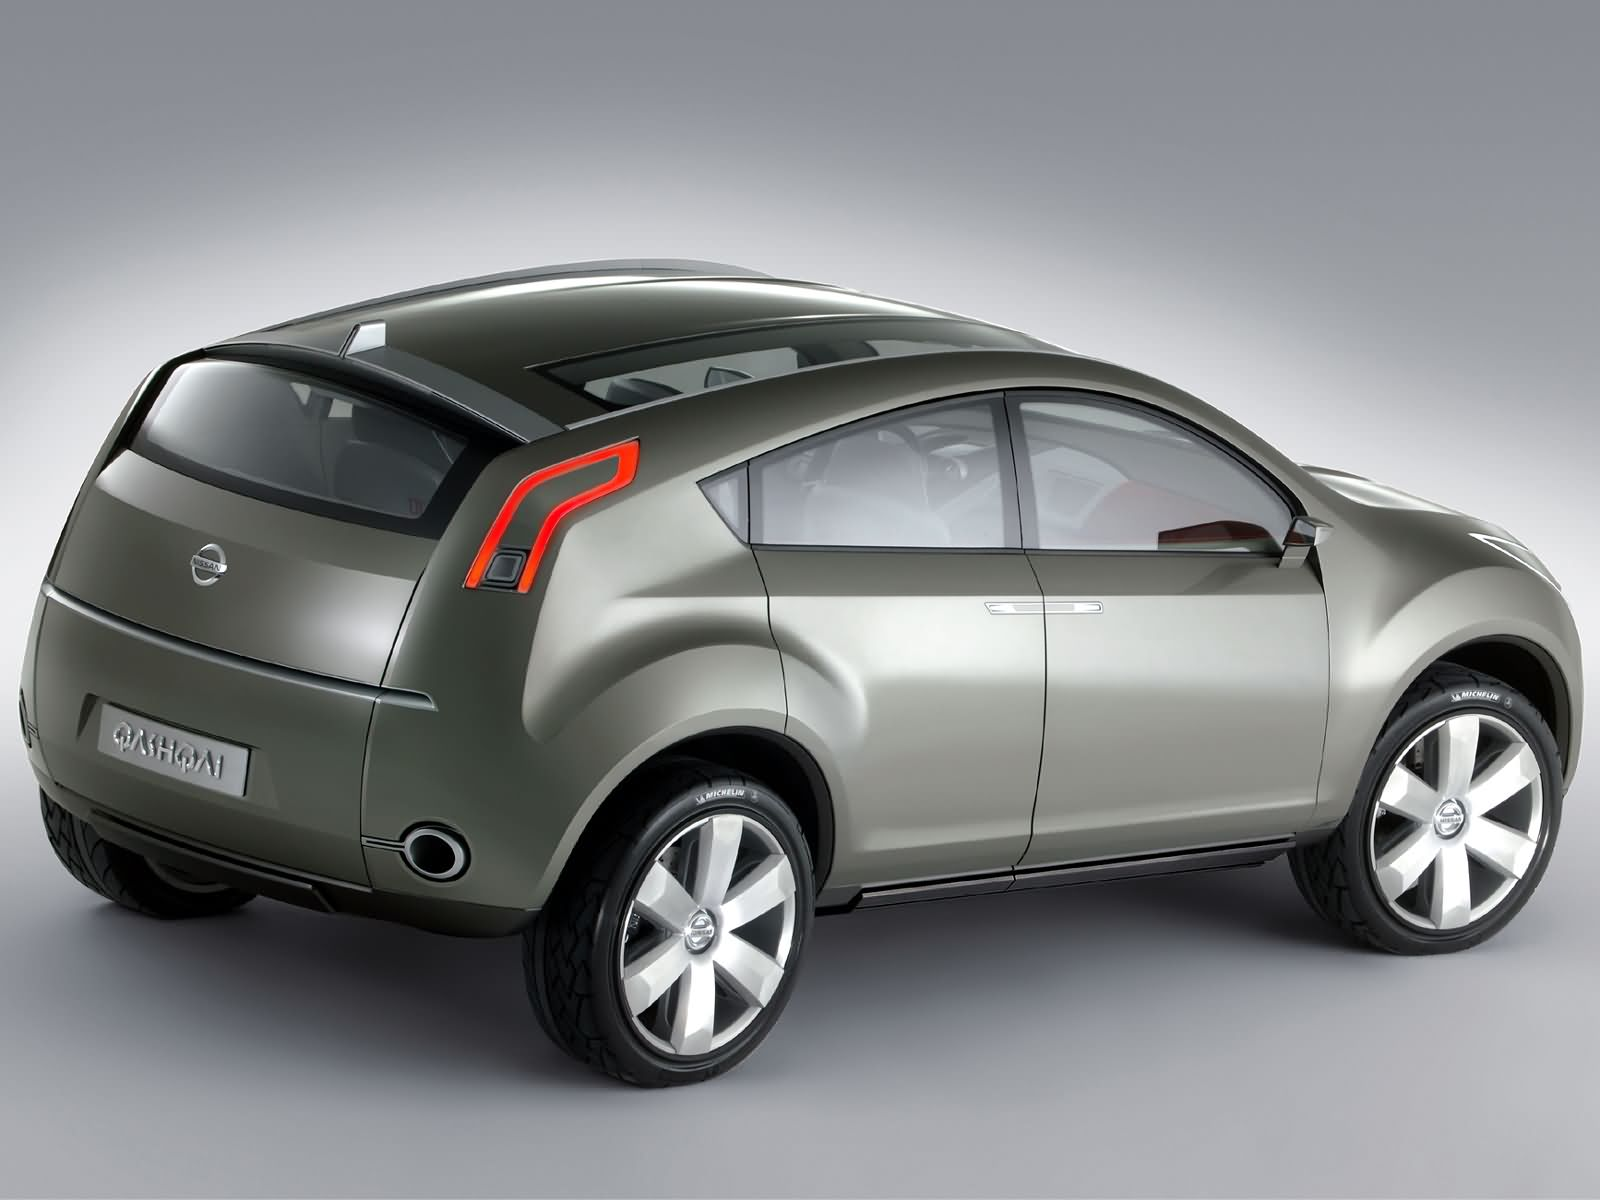 nissan qashqai concept 2004 nissan qashqai concept 2004 photo 04 car in pictures car photo. Black Bedroom Furniture Sets. Home Design Ideas